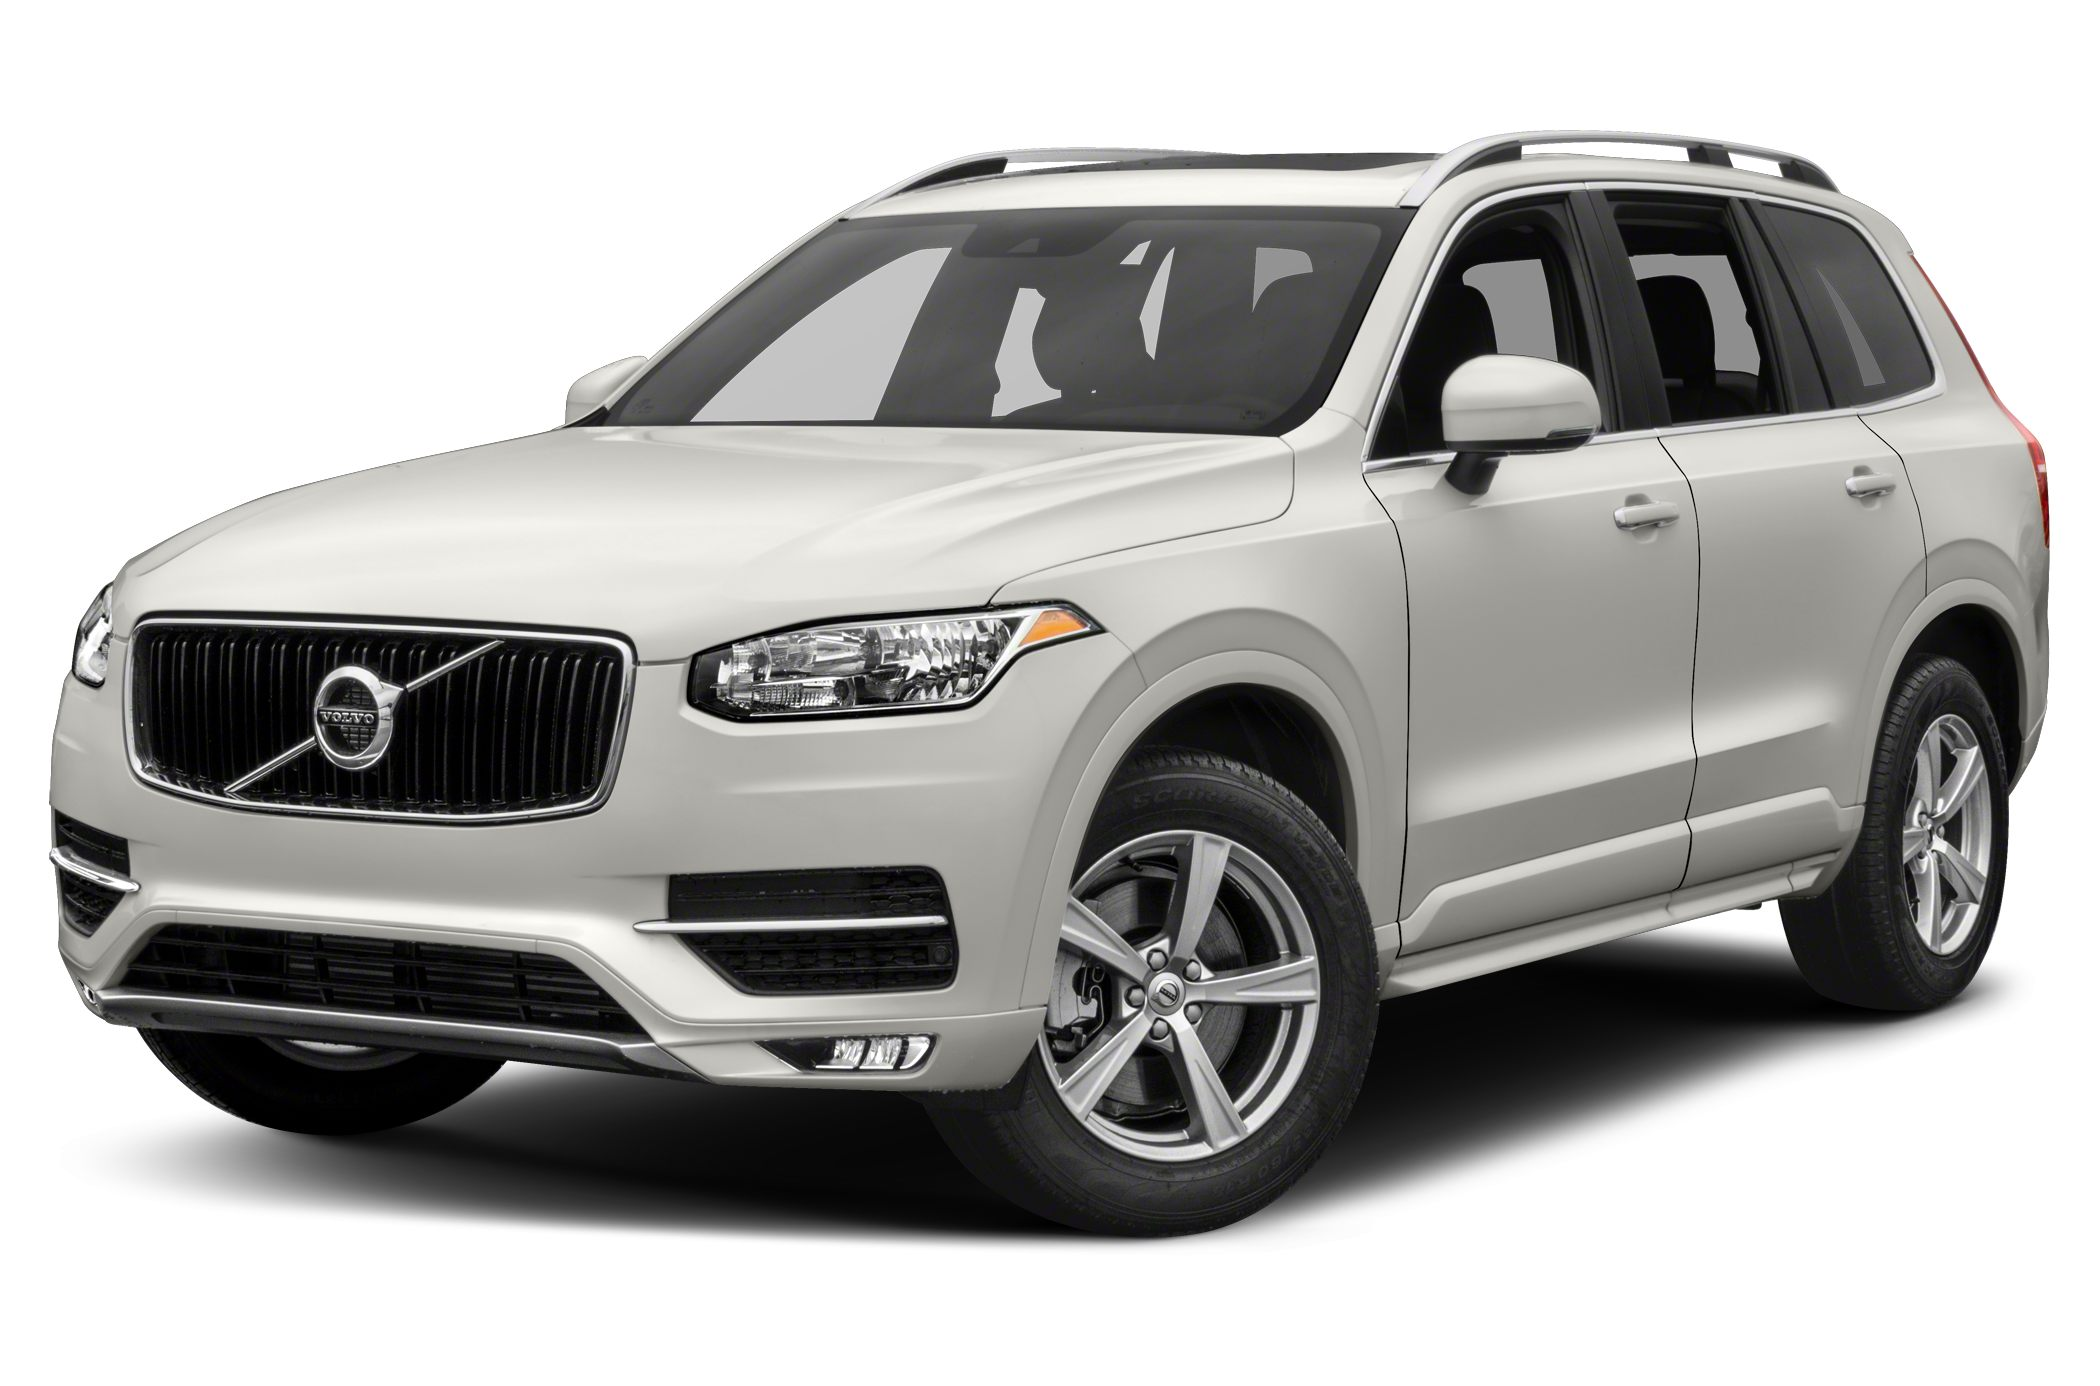 volvo xc90 news photos and buying information   autoblog